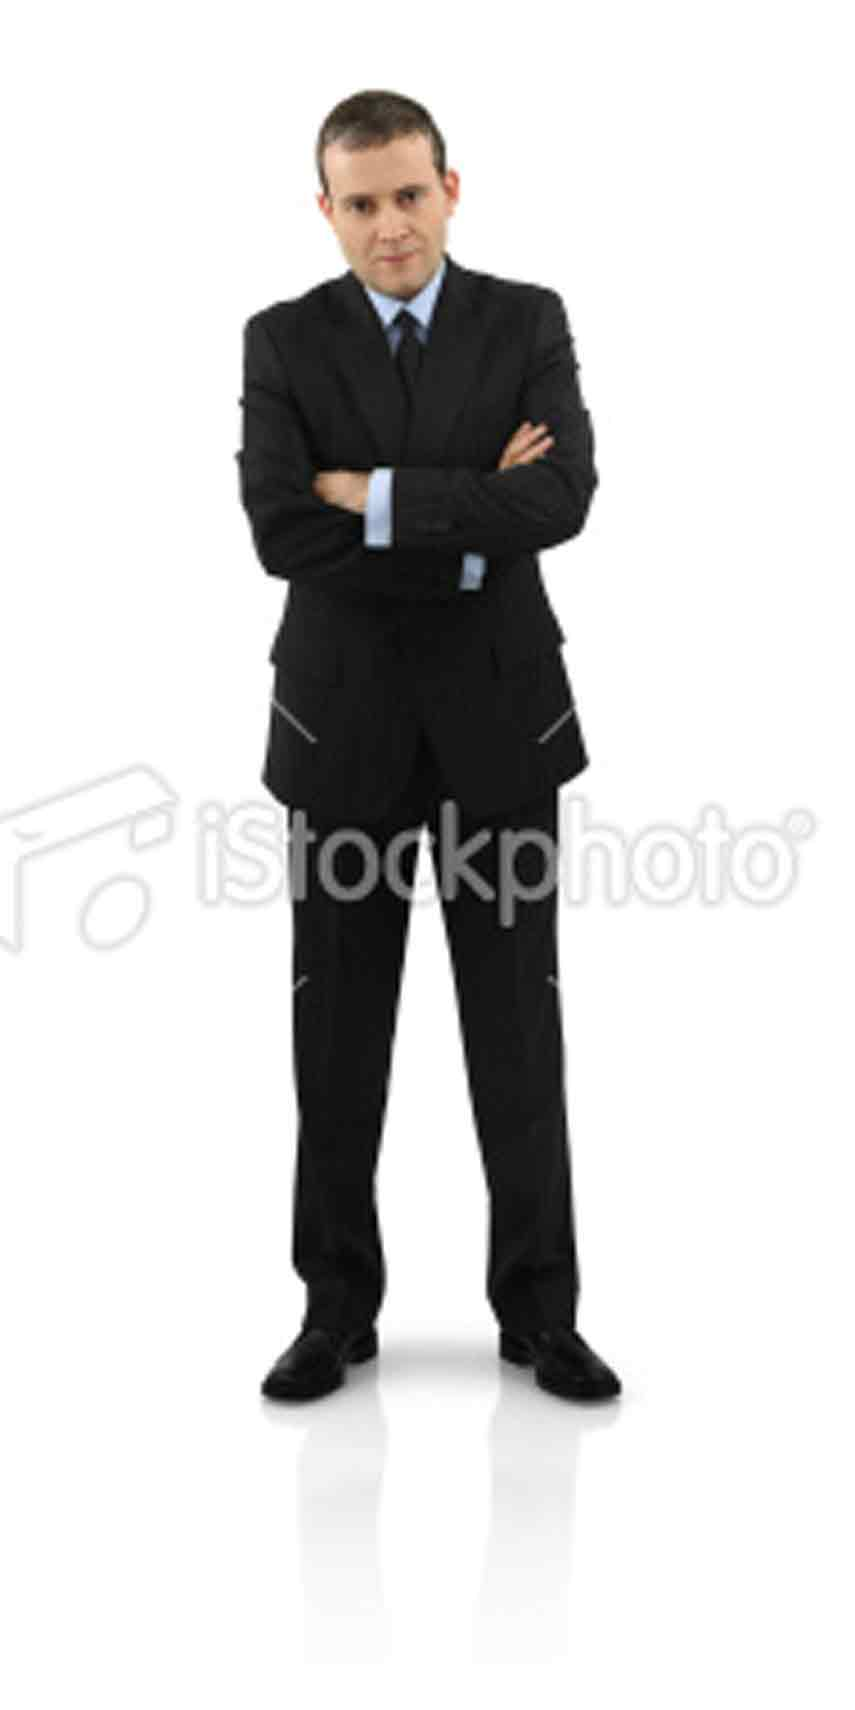 businessman standing on white background ... and has given many generations of families both education and joy.